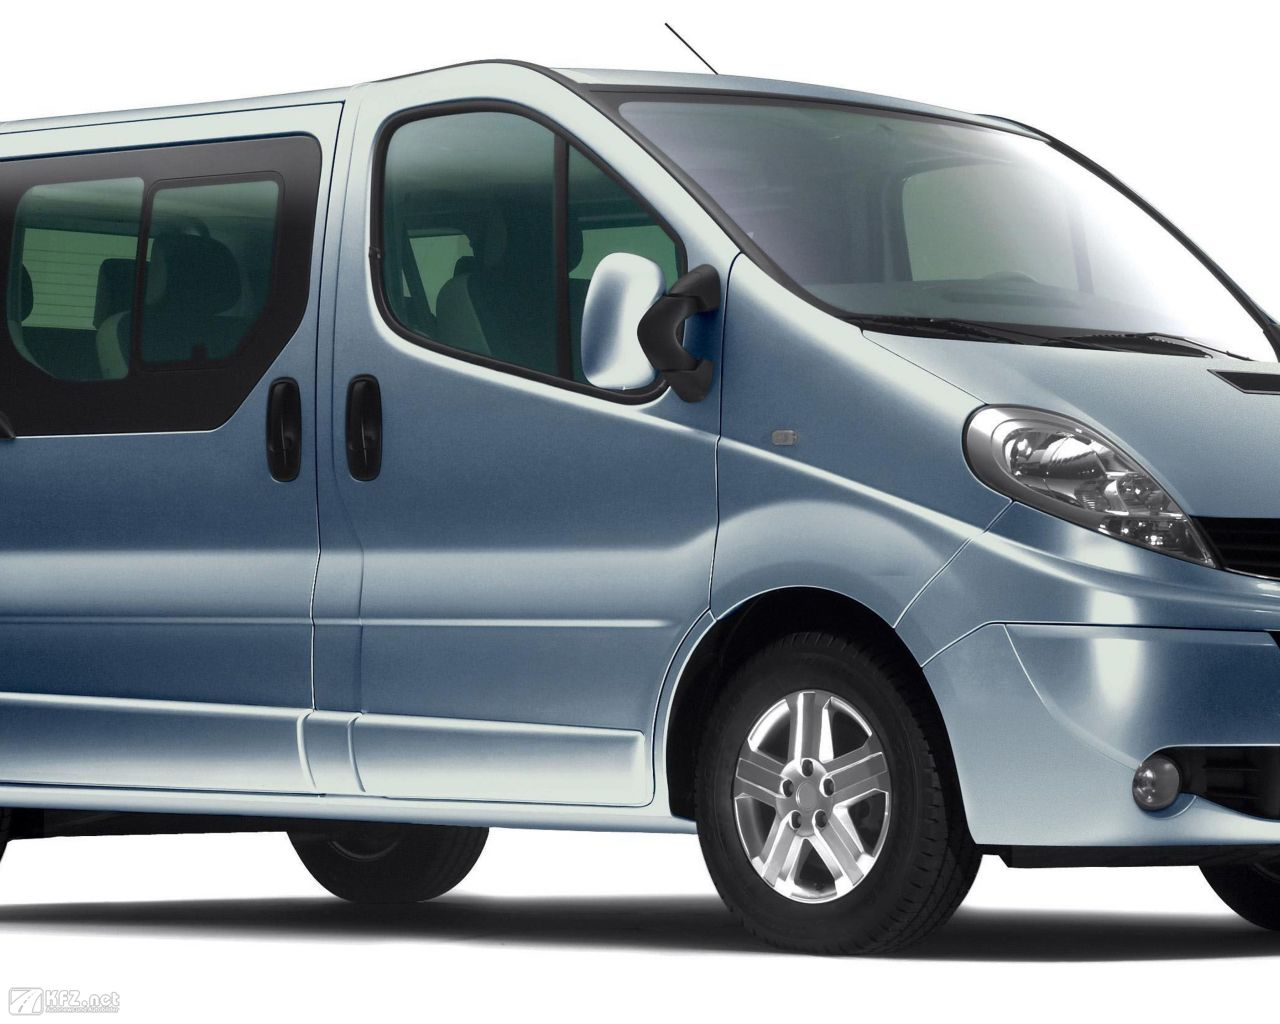 renault-trafic-1280x1024-5